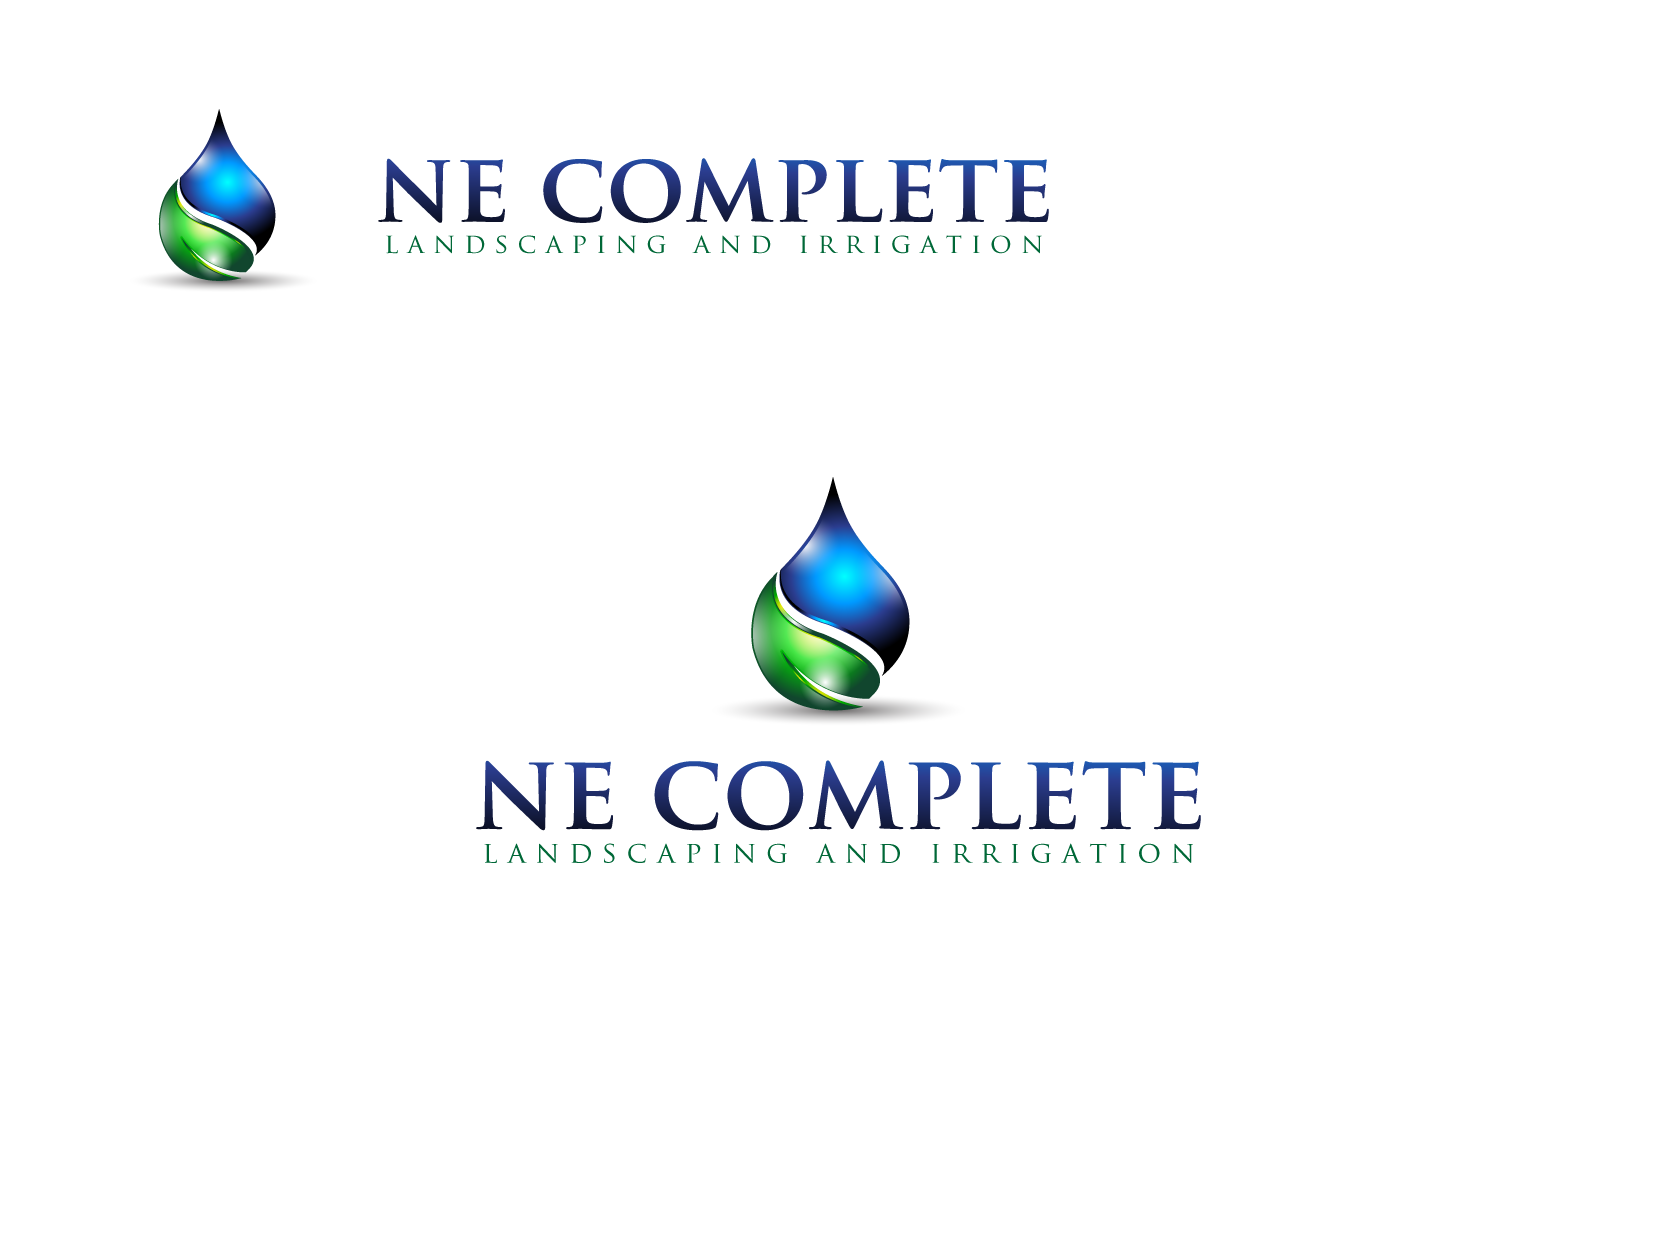 Logo Design by G.DRACHIT - Entry No. 43 in the Logo Design Contest Fun Logo Design for ne complete landscaping and irrigation.